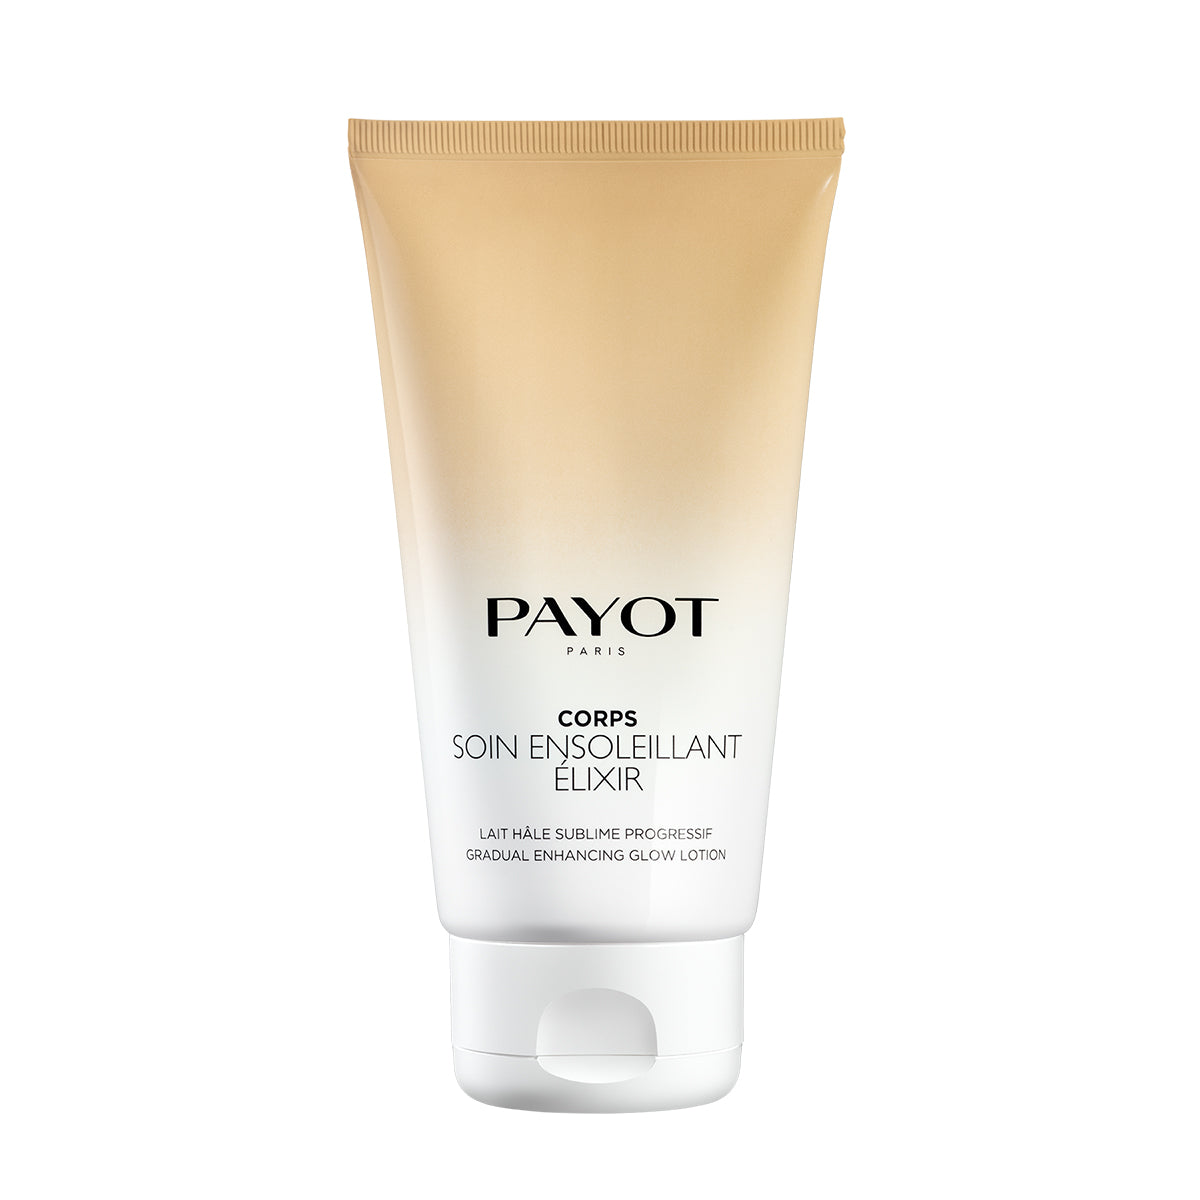 Payot Sublime and Progressive Tanning Milk